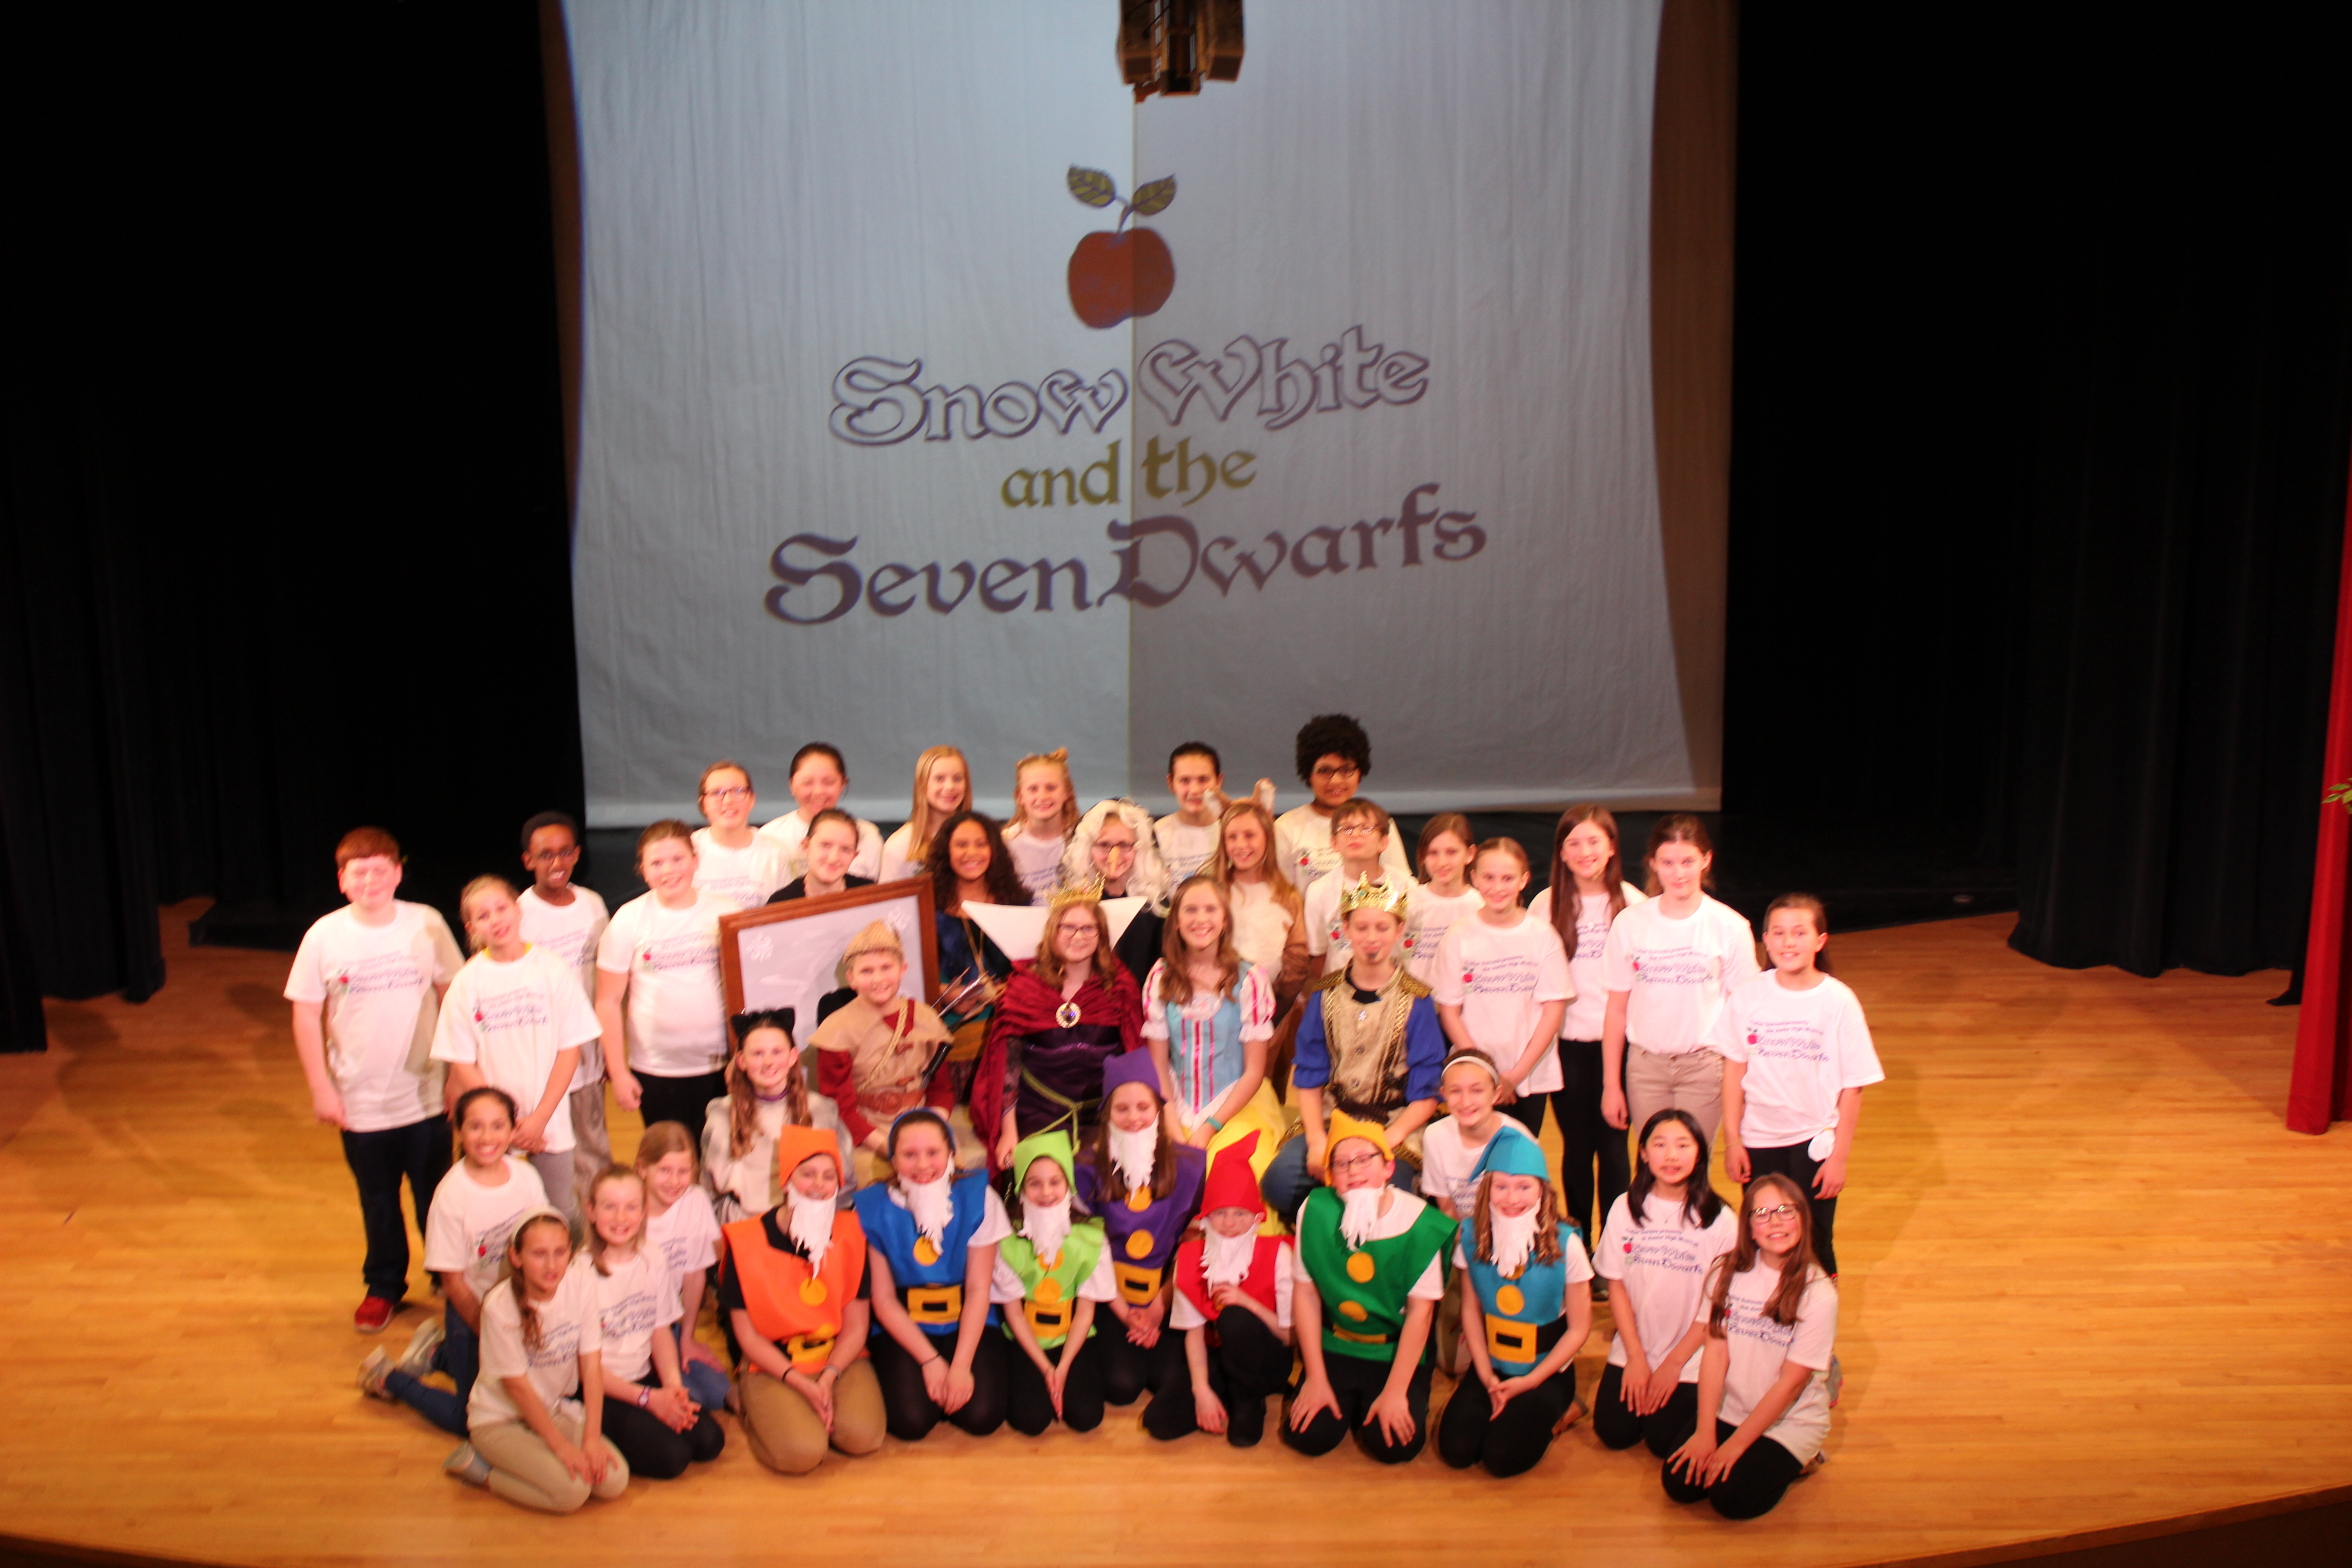 CJHS Musical 2019 - Snow White & the Seven Dwarfs